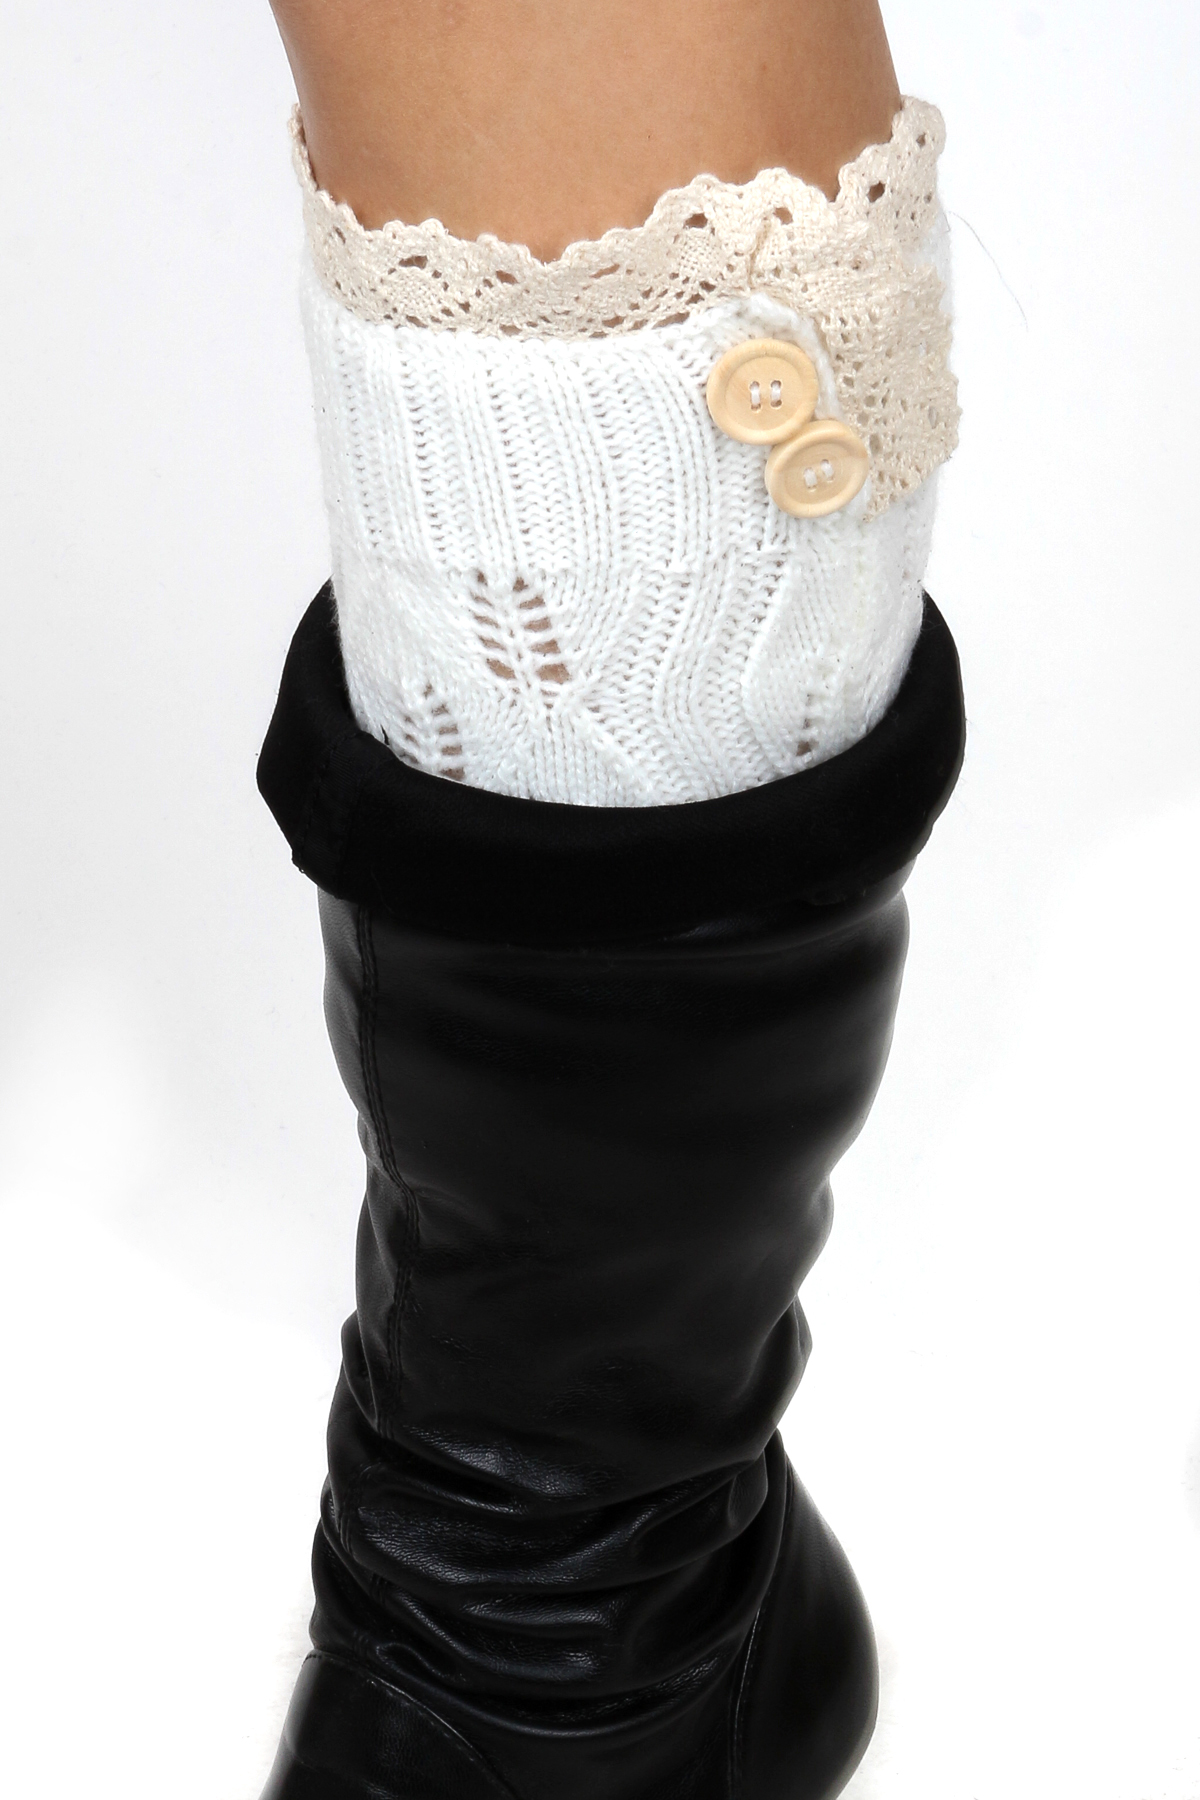 Knitting Pattern For Leg Warmers With Buttons : Knitted Button Leg Warmers - Gloves & Leg Warmers